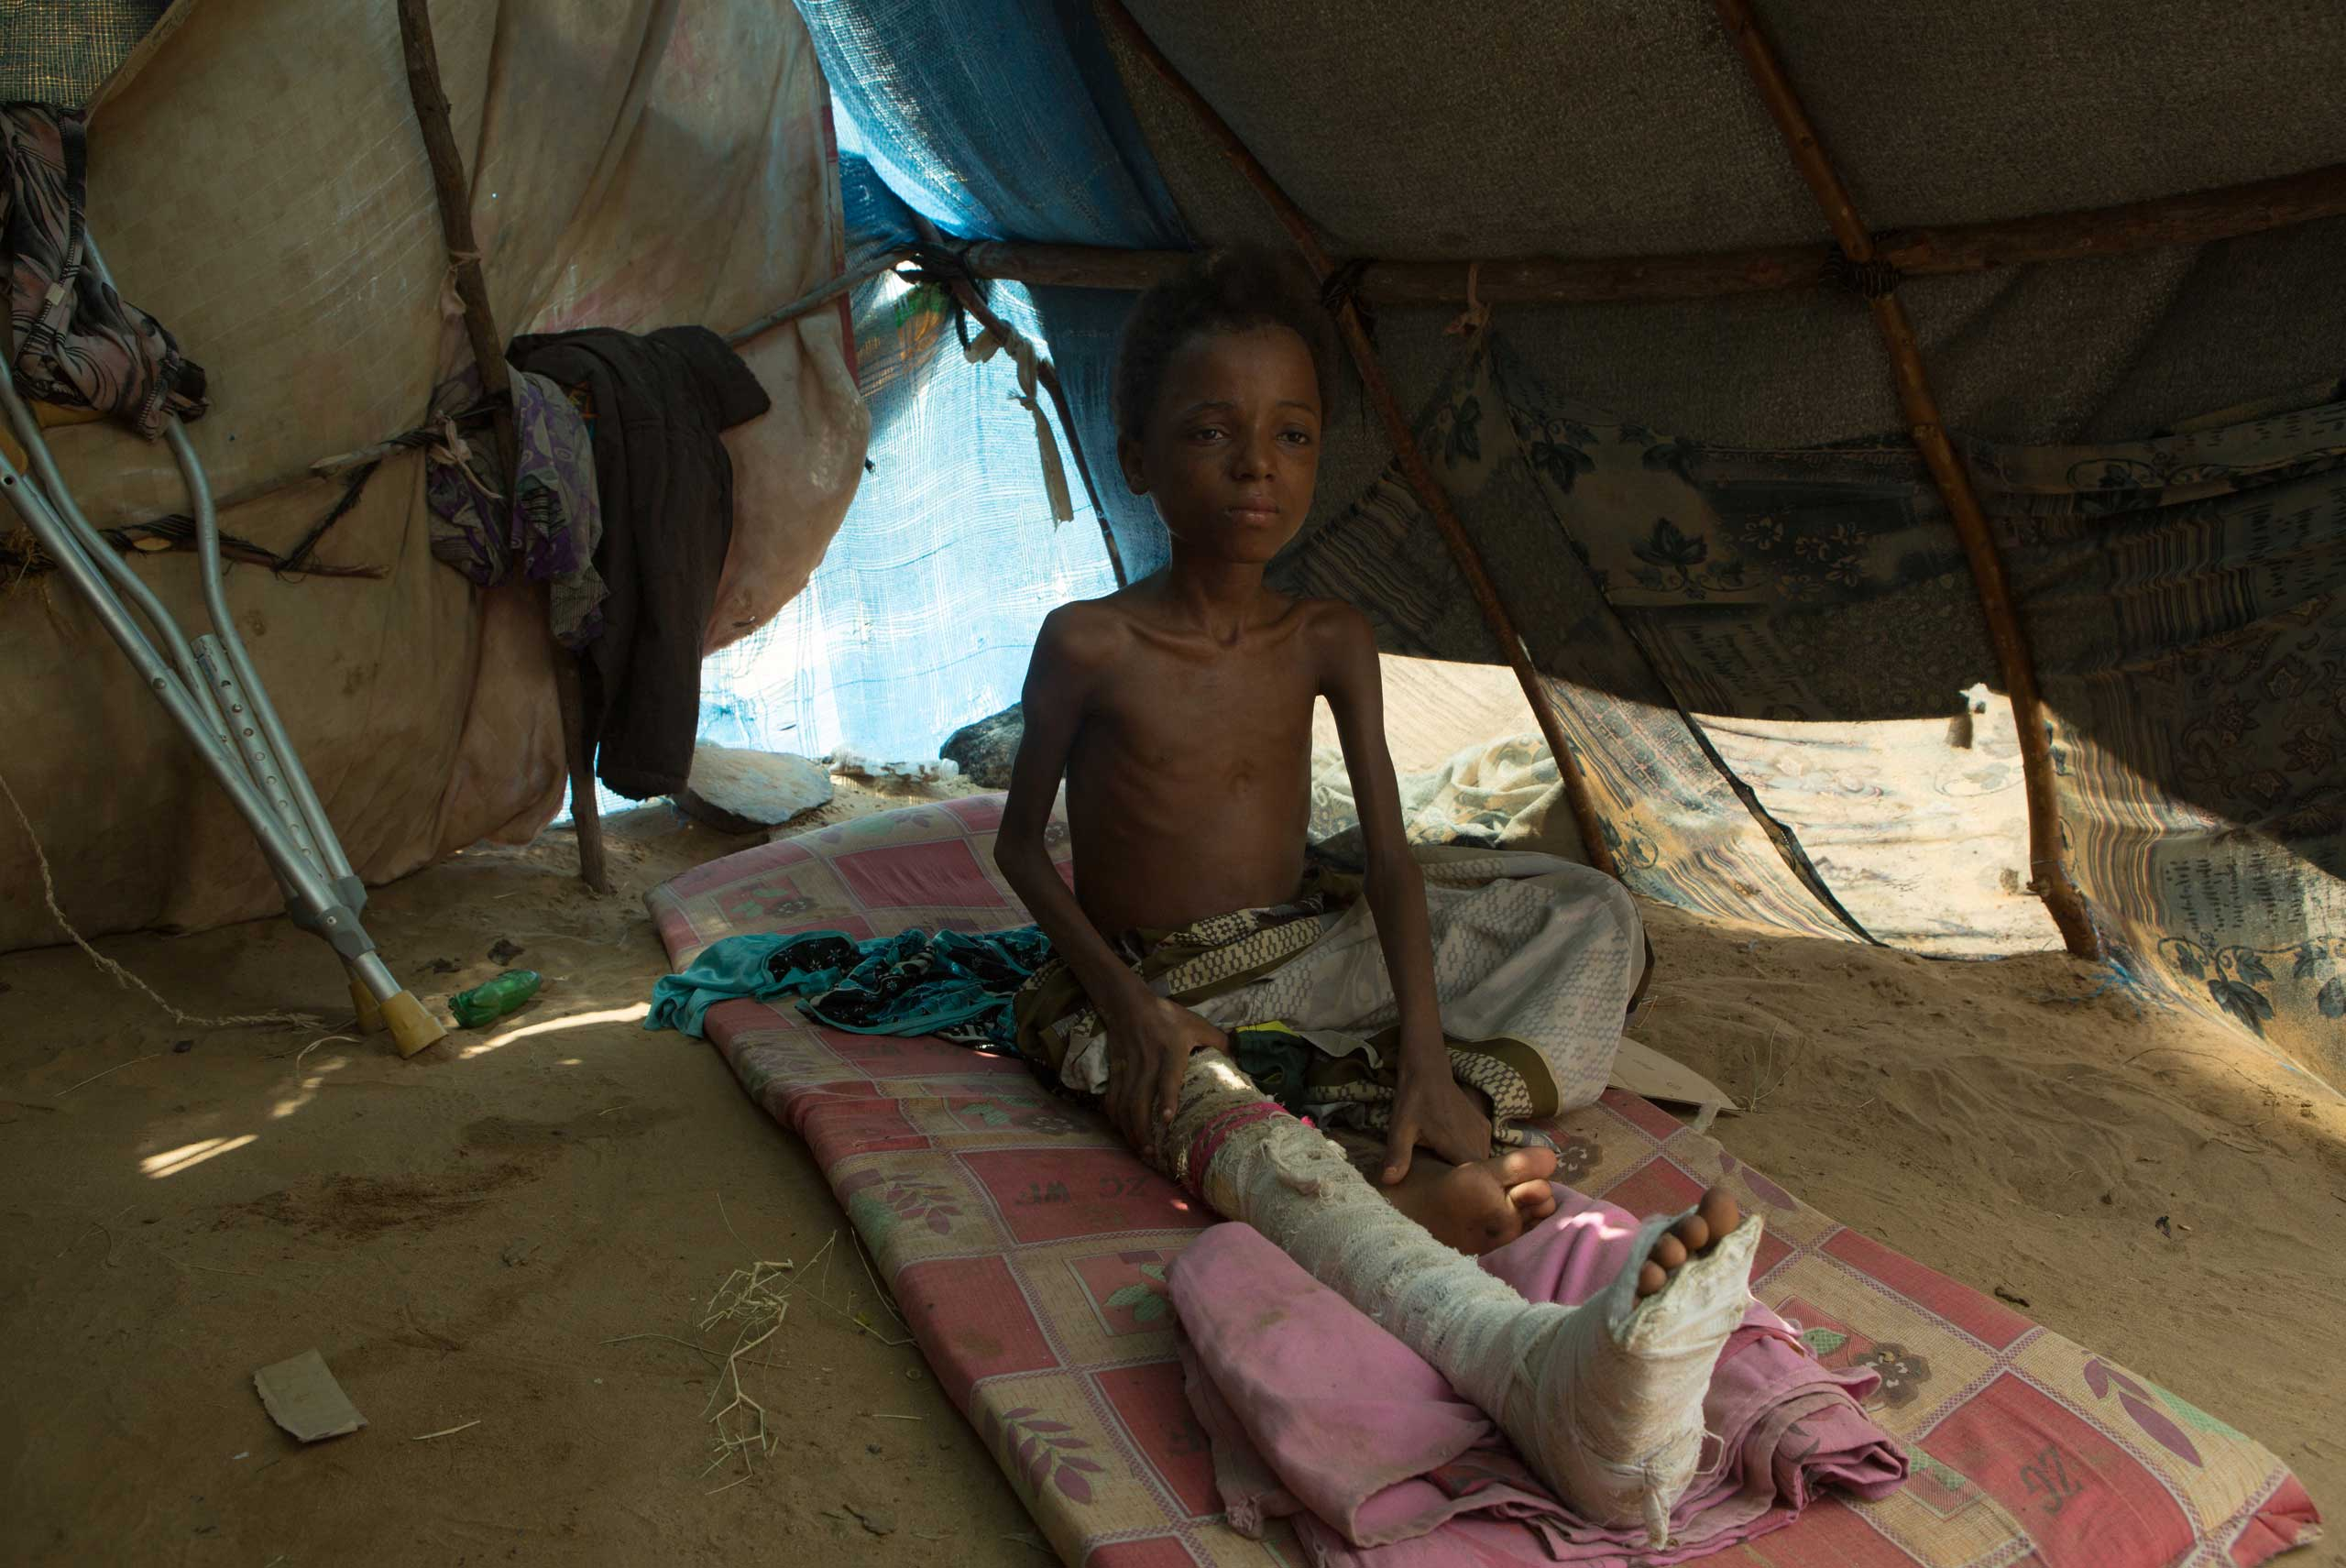 Aziz, 11, an IDP at  the Beni Hassan camp in Hajjah province. In March 2015 he was  injured during a Saudi-led airstrike at a camp for internal refugees in Al Mazraq, Aug. 20, 2015.